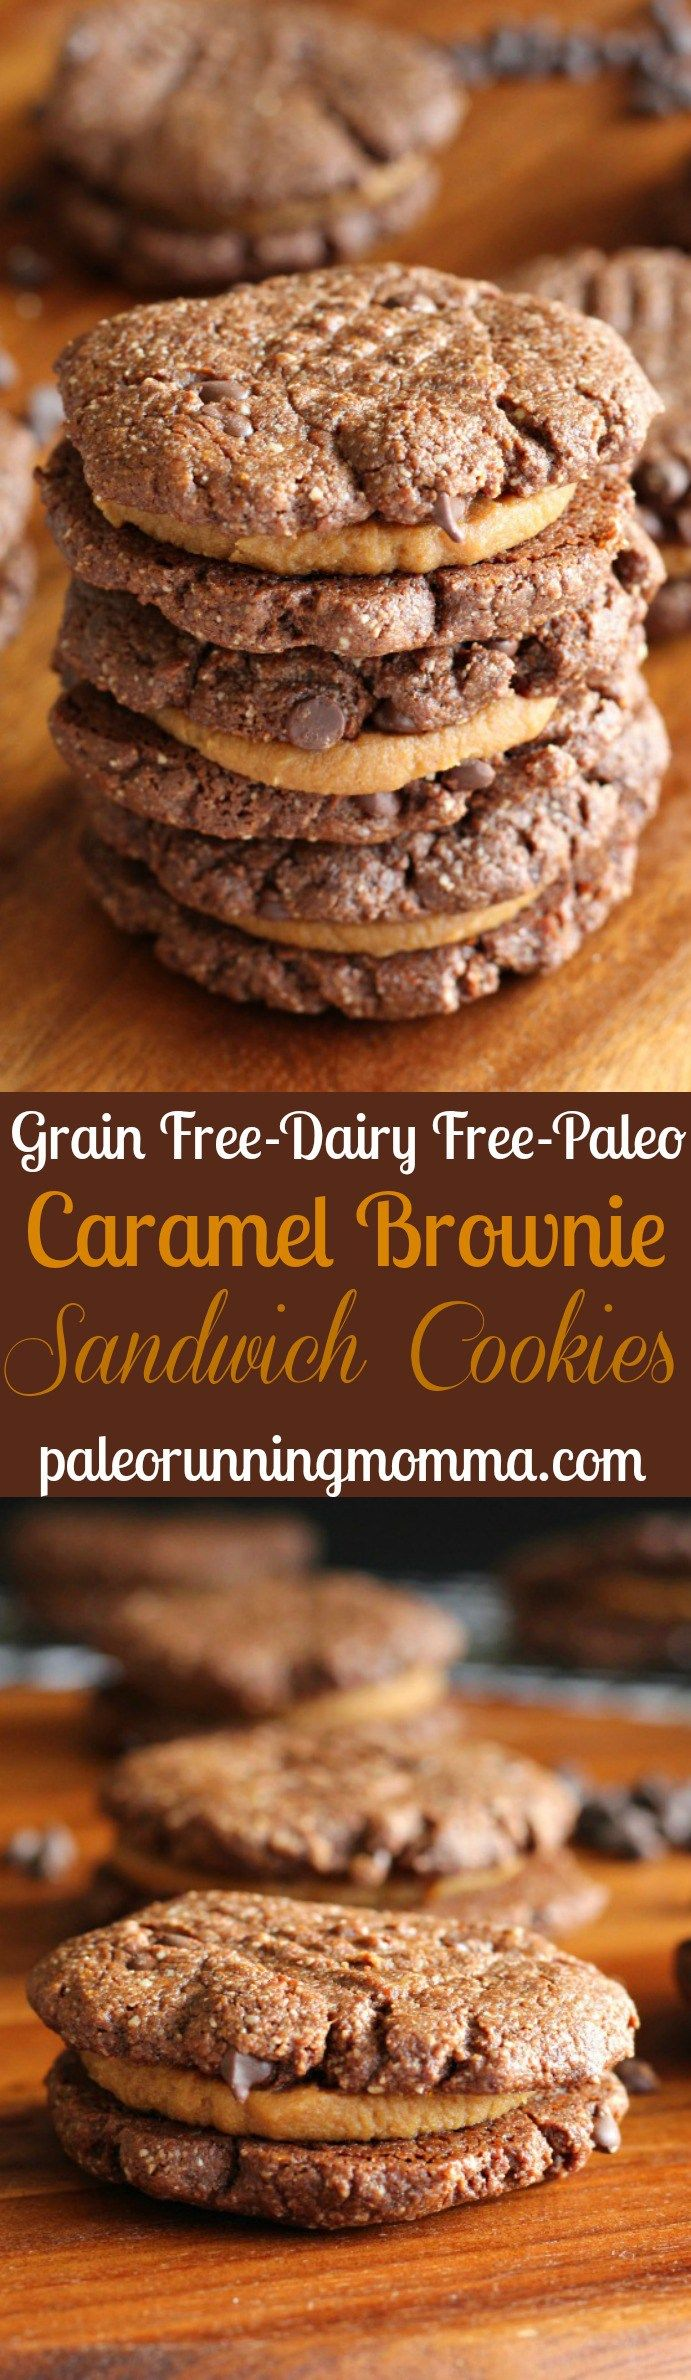 Chewy Caramel Brownie Sandwich Cookies - grain free, paleo, dairyfree, gluten free. Made with almond butter and almond flour; filling has coconut milk, coconut oil, sugar, and almond butter.